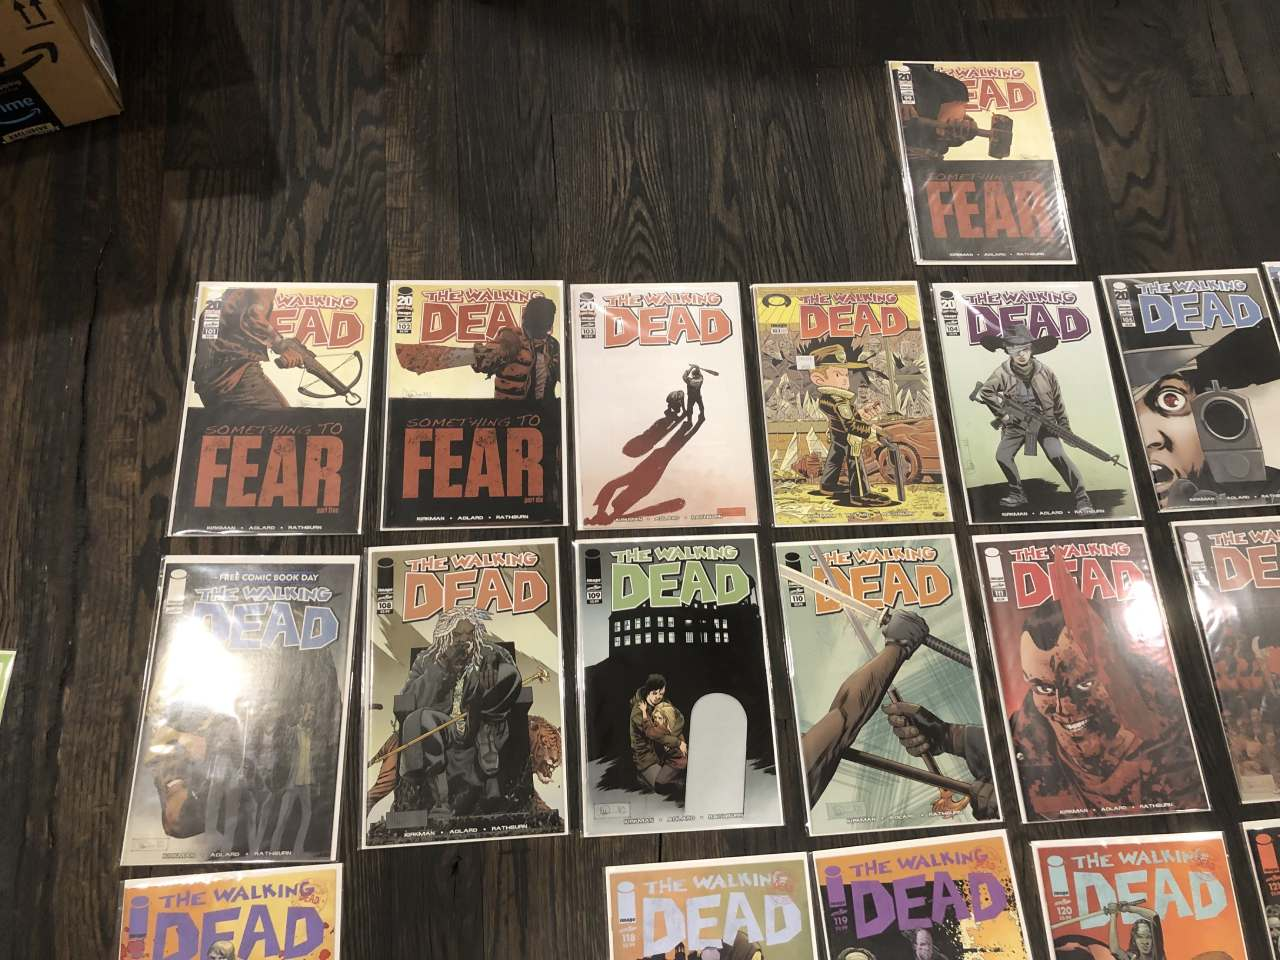 Walking Dead Comic Books for Sale - Upper Left